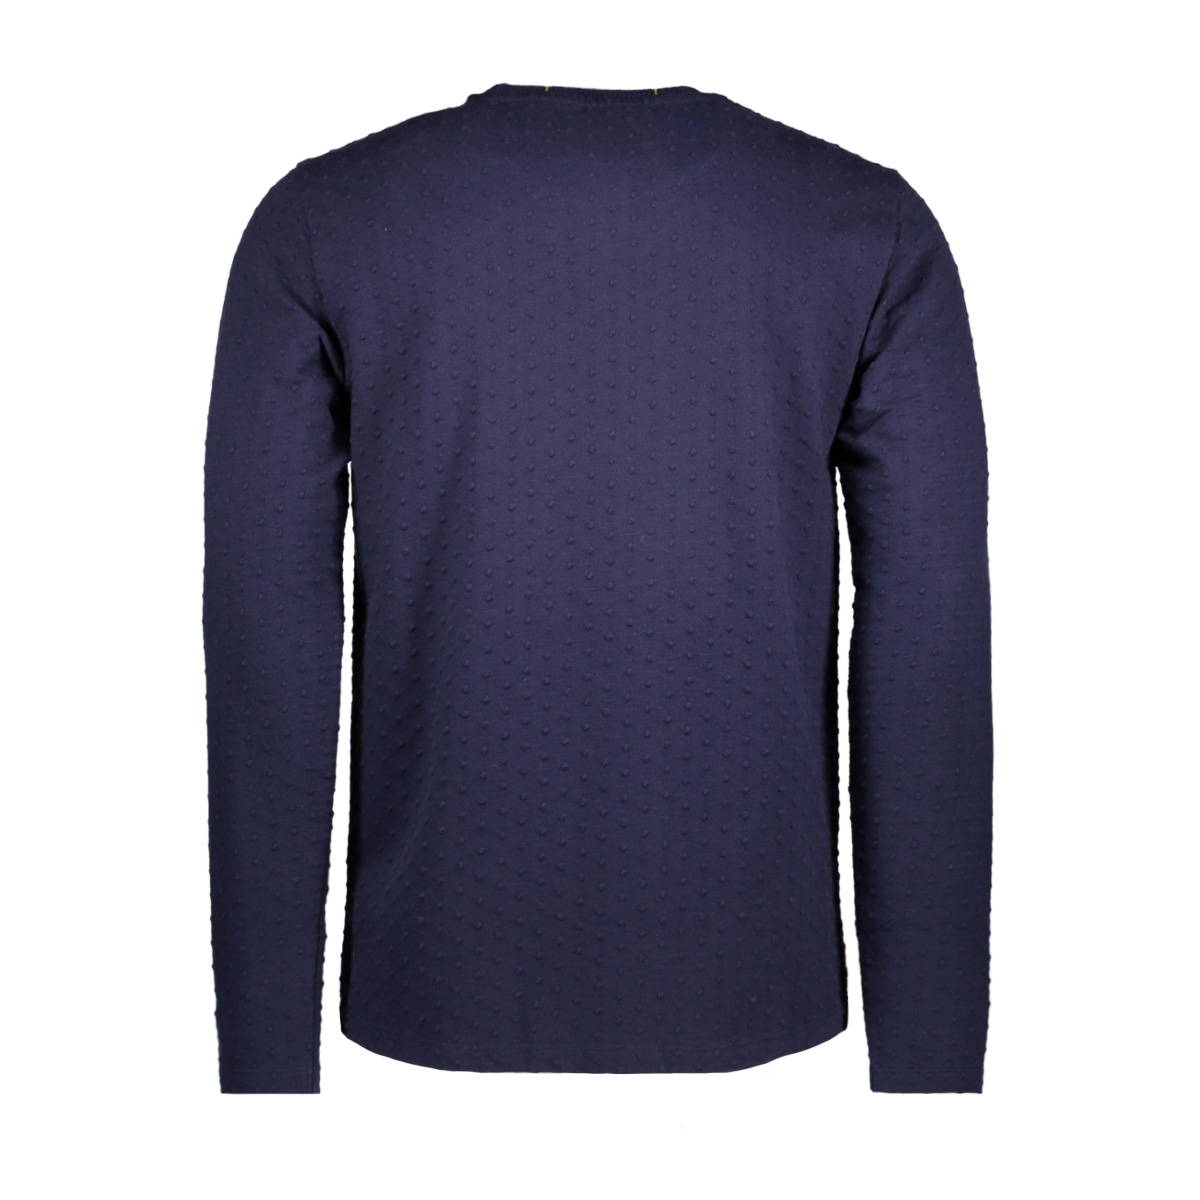 82110952 no-excess sweater 132 shadow blue